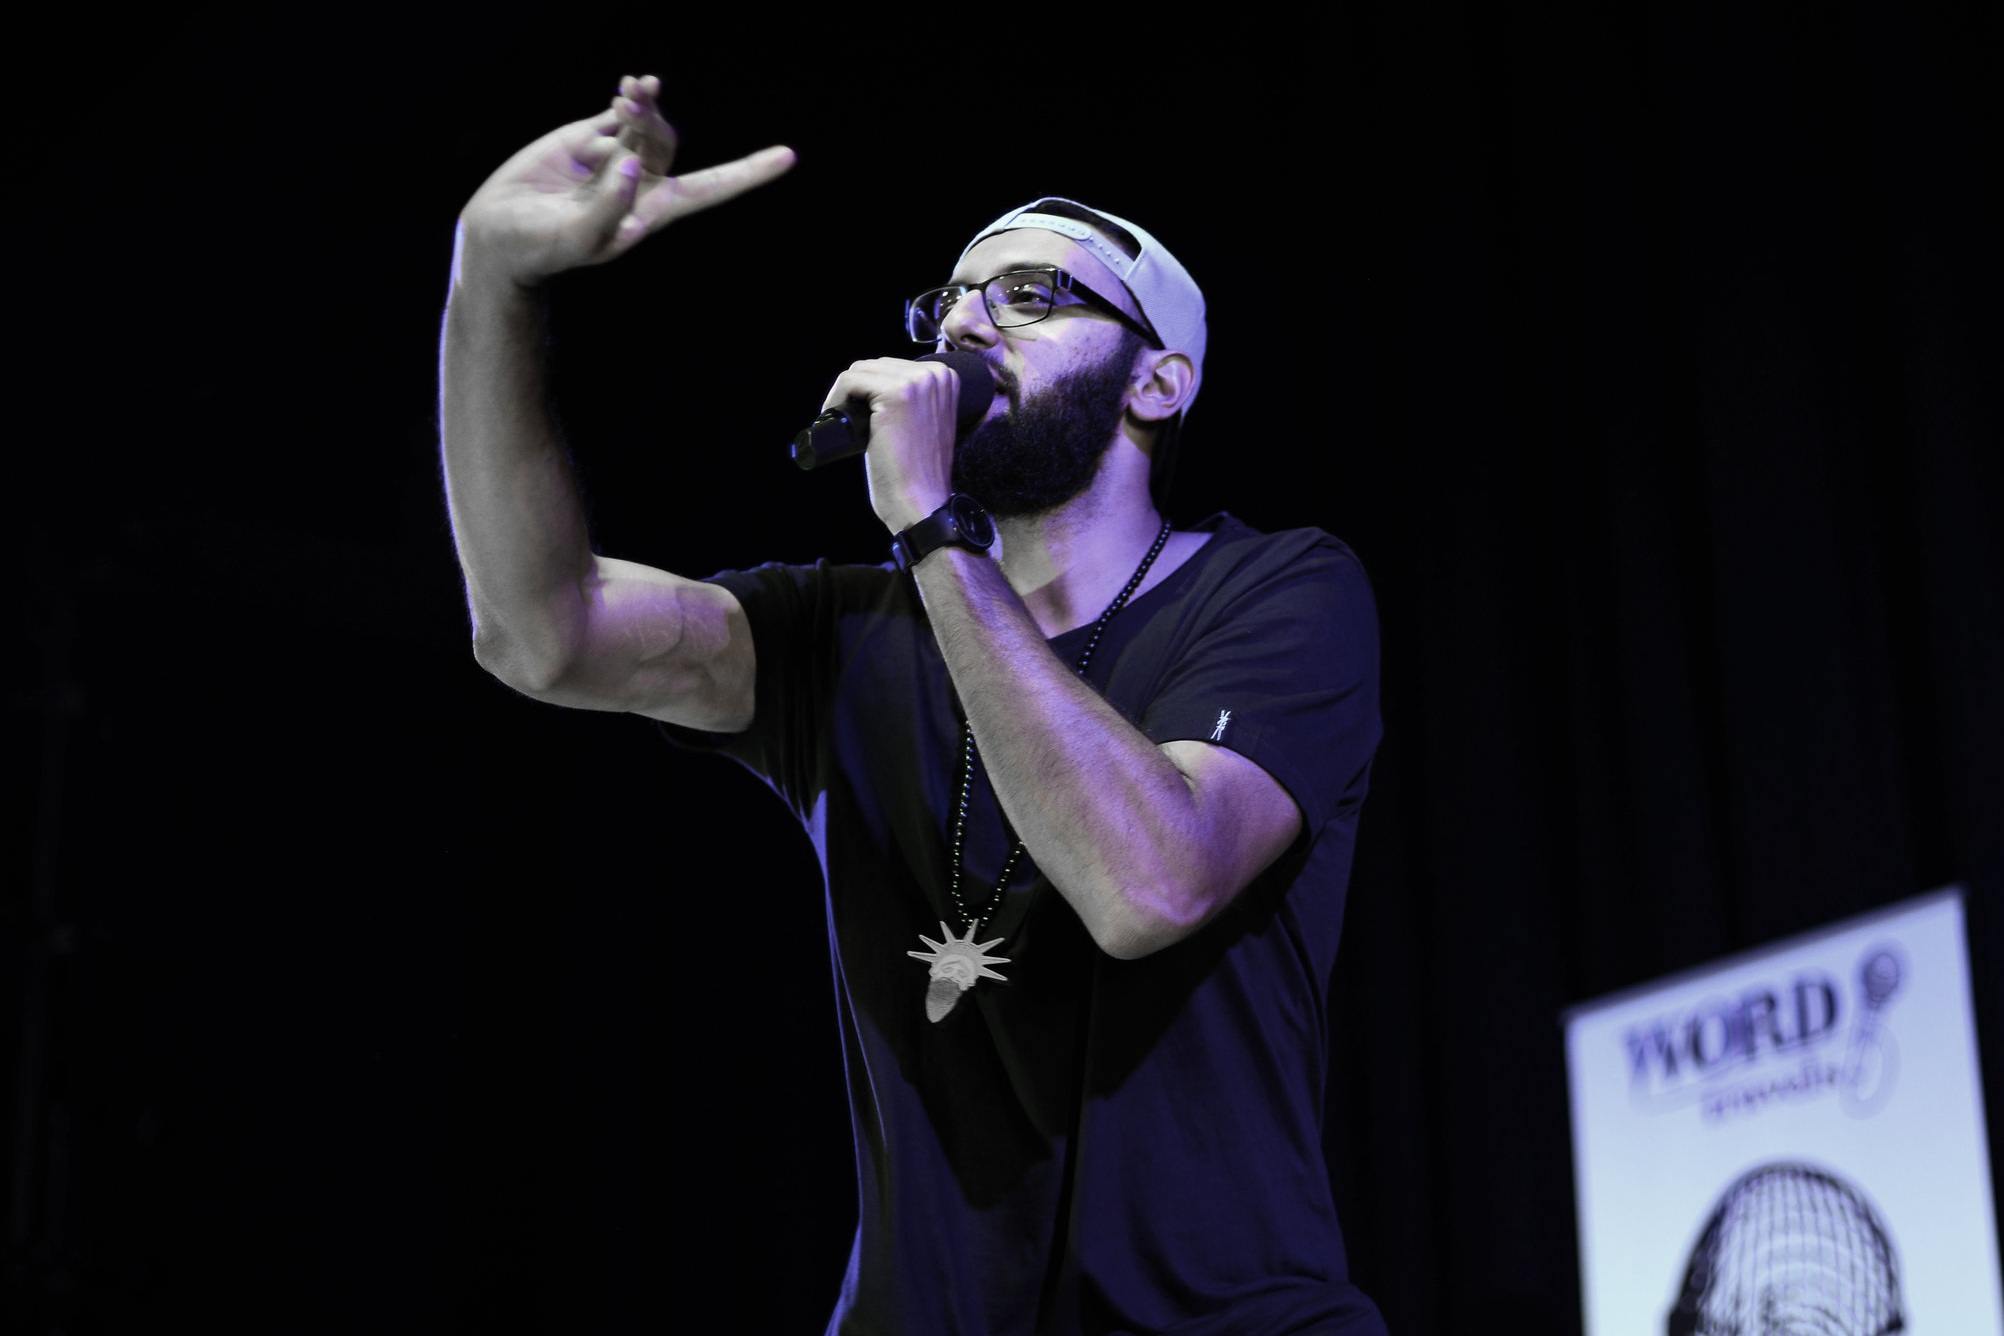 Zohab Zee Khan , 2014 Australian Poetry Slam Champion, performing at the National Final at Sydney Opera House.